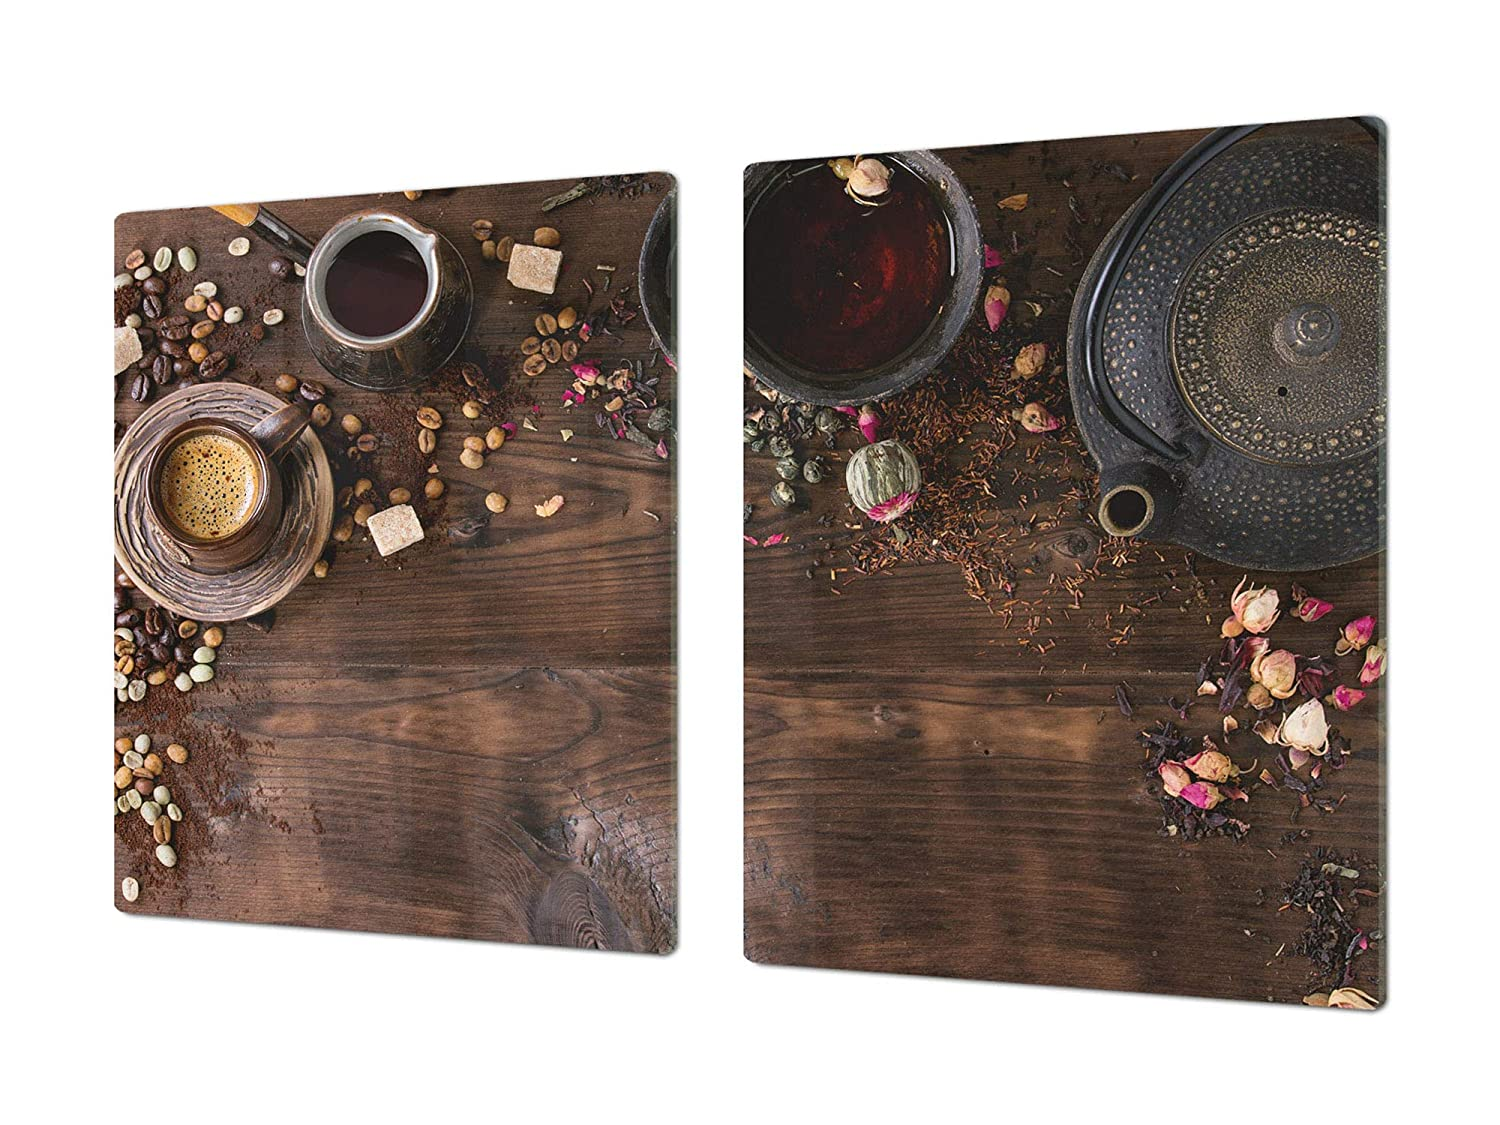 Teapot with coffee 2 2x40x52 HUGE Cutting Board – Worktop saver and Pastry Board – Scratch & Shatter Resistant Glass Kitchen Board; MEASURES  SINGLE  80 x 52 cm (31,5  x 20,47 ); DOUBLE  40 x 52 cm (15,75  x 20,47 ); Coffee series DD07